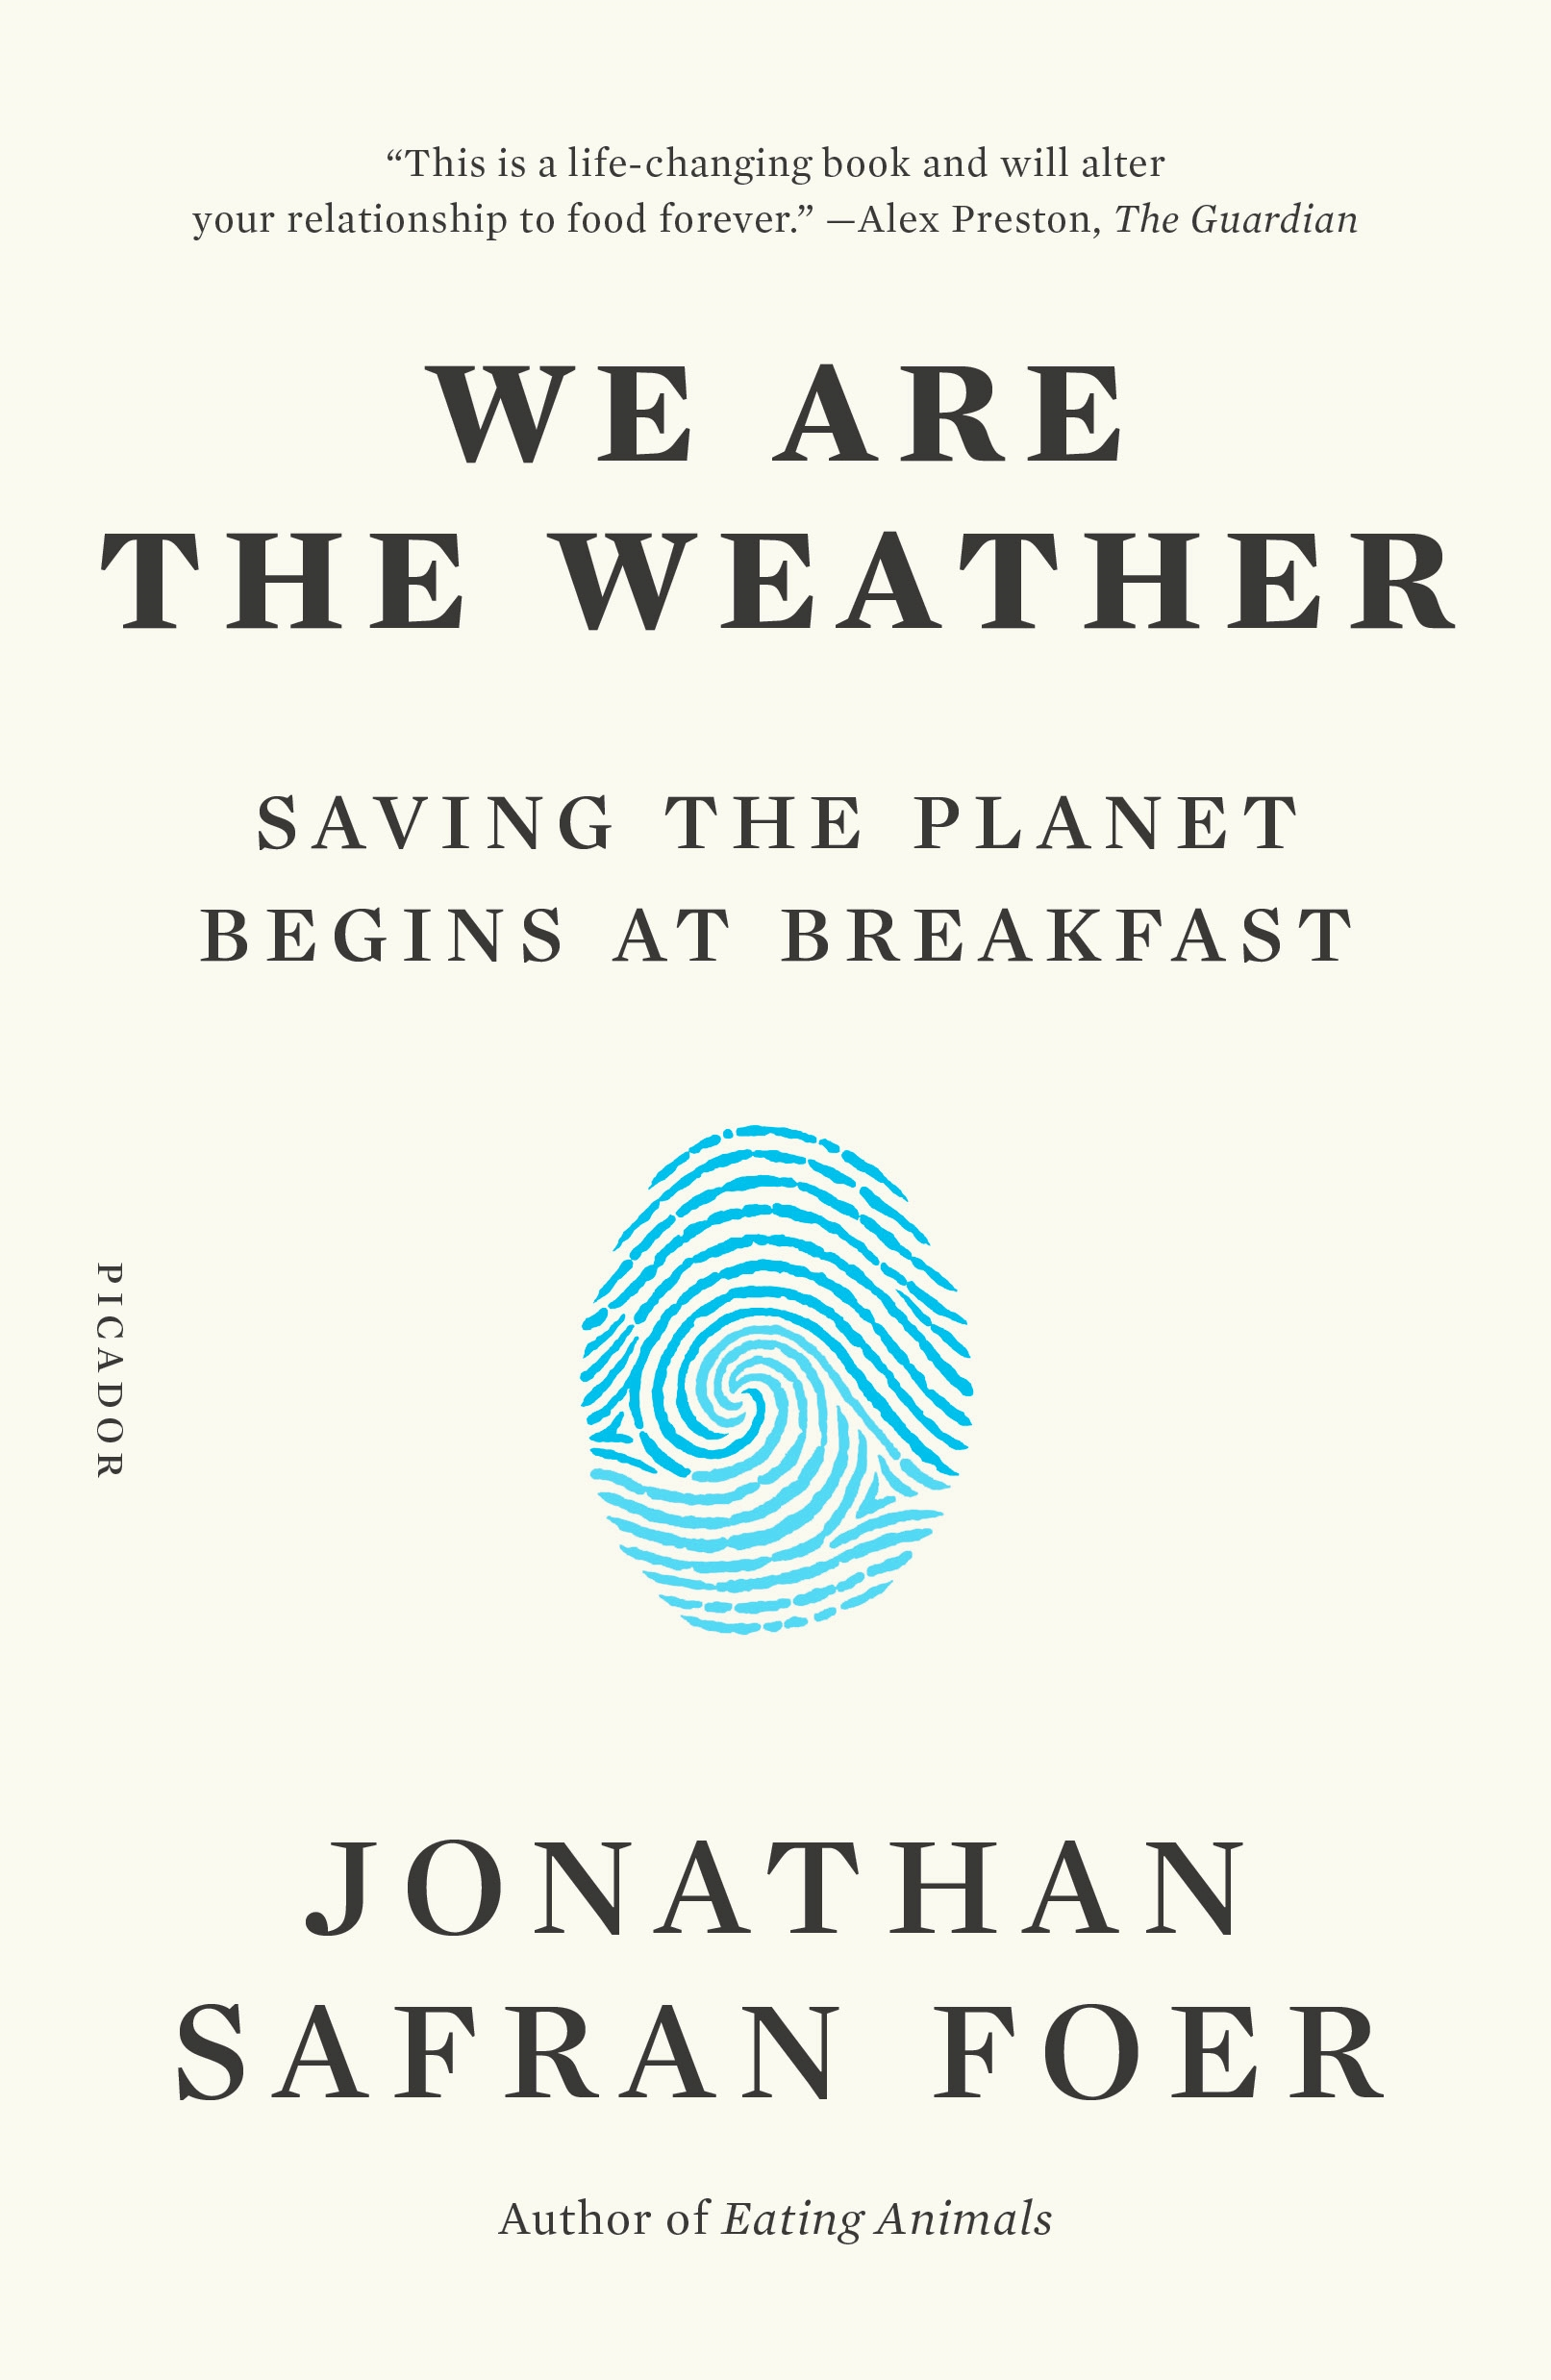 We are the weather saving the planet begins at breakfast cover image